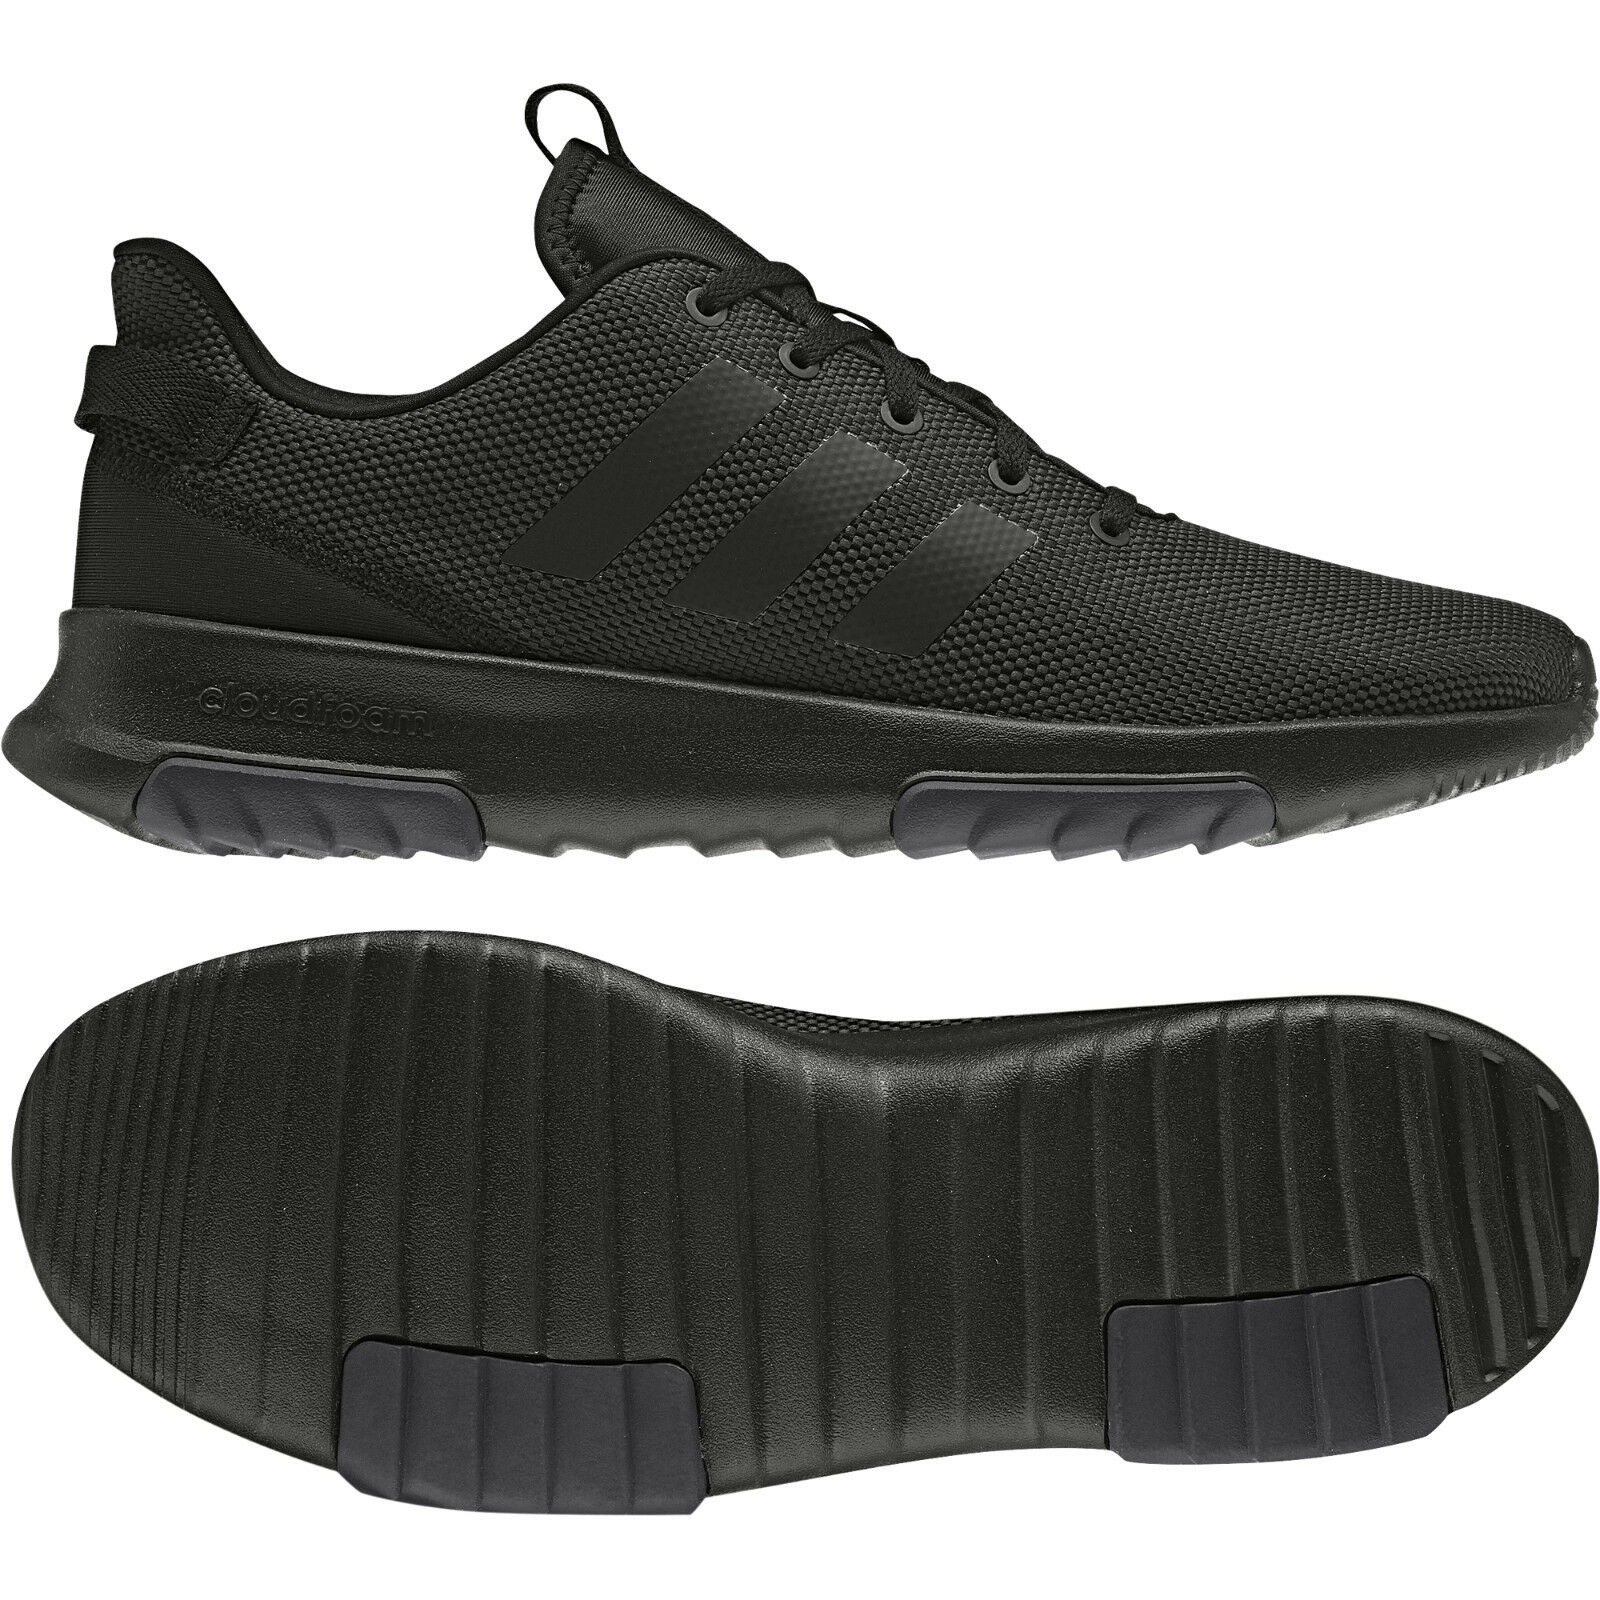 Adidas Neo Homme Chaussures Cloudfoam Racer TR Running Training Trainers Gym B43651 New